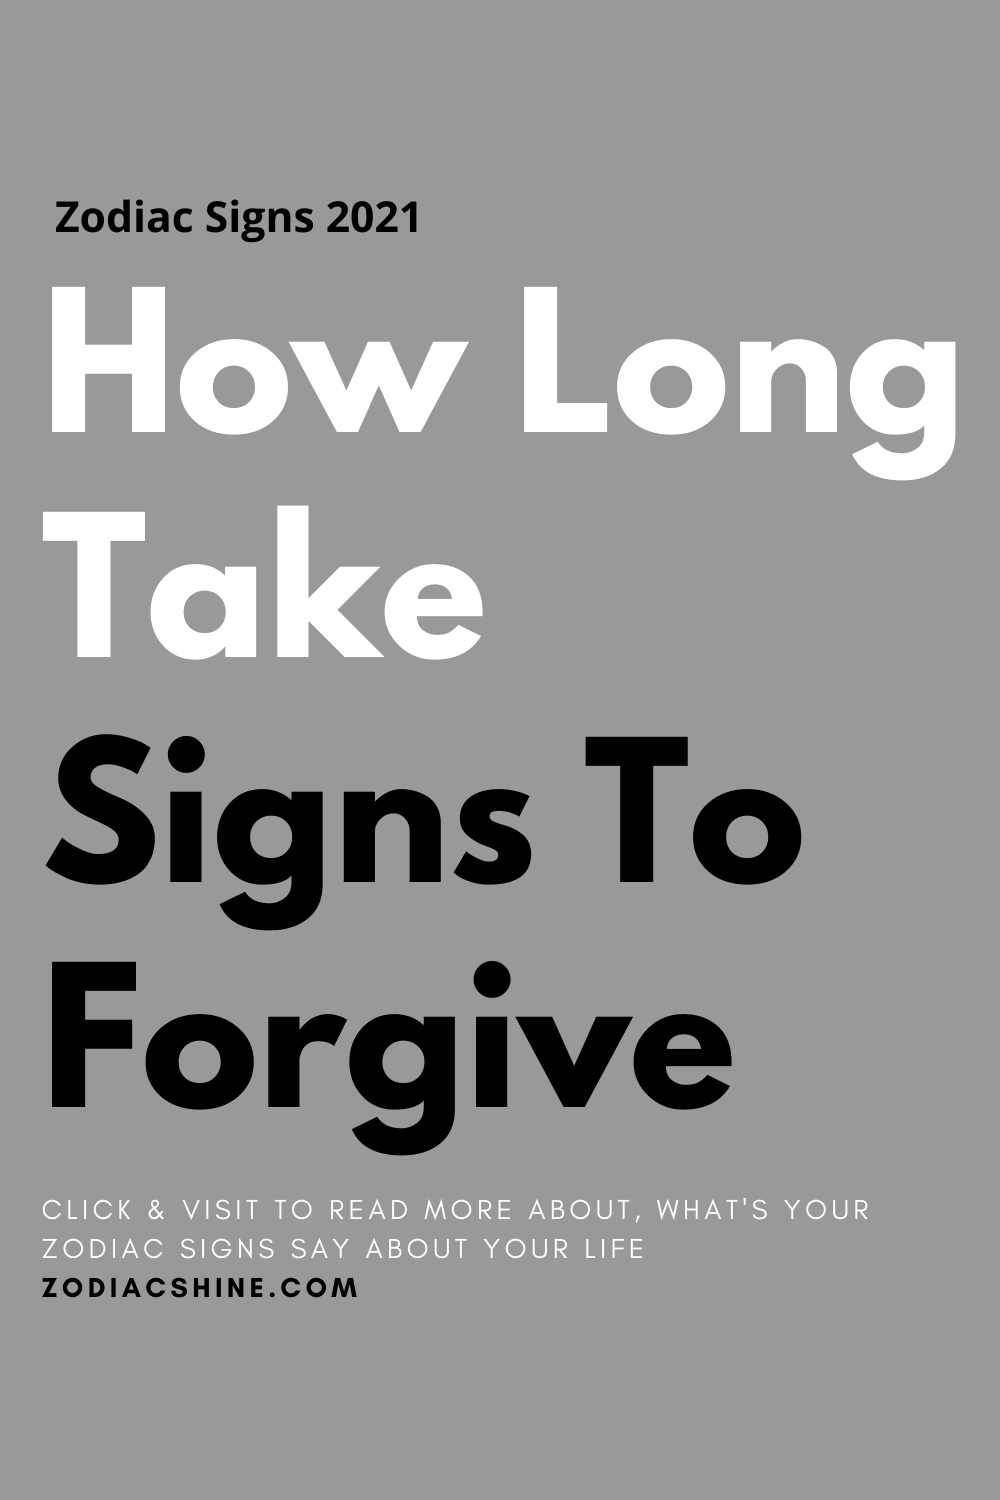 How Long Take Signs To Forgive